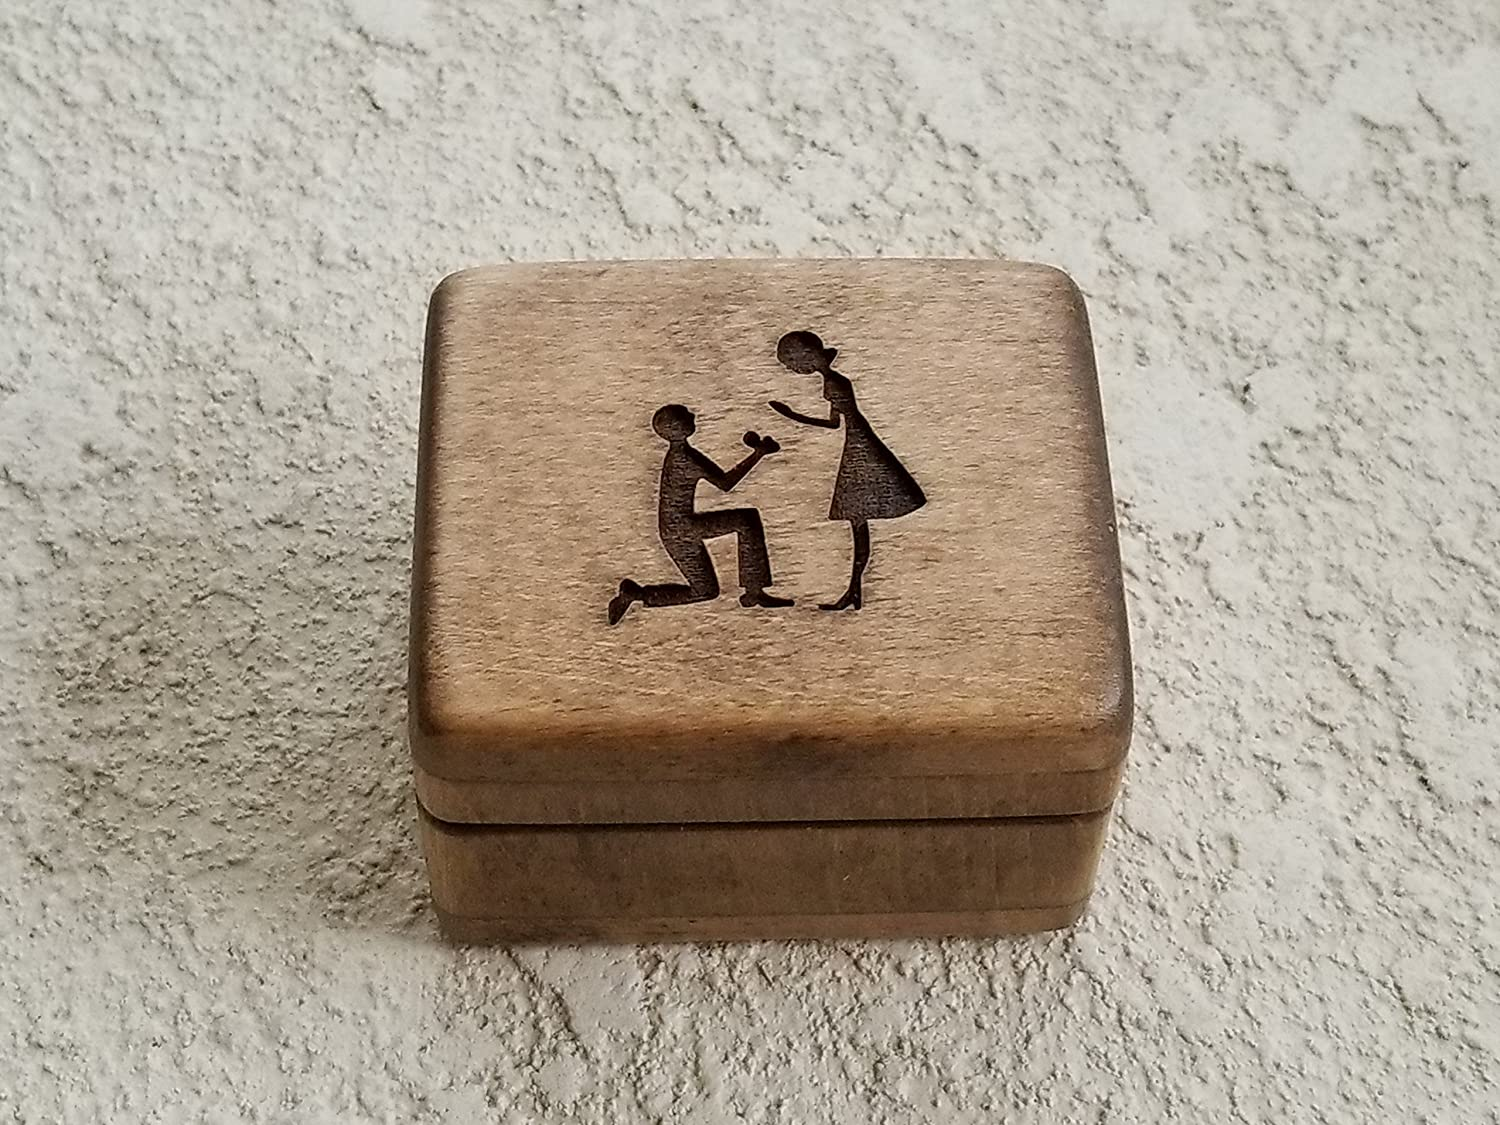 Custom engraved wooden ring box, engagement ring box, Will you marry me? handmade by Simplycoolgifts